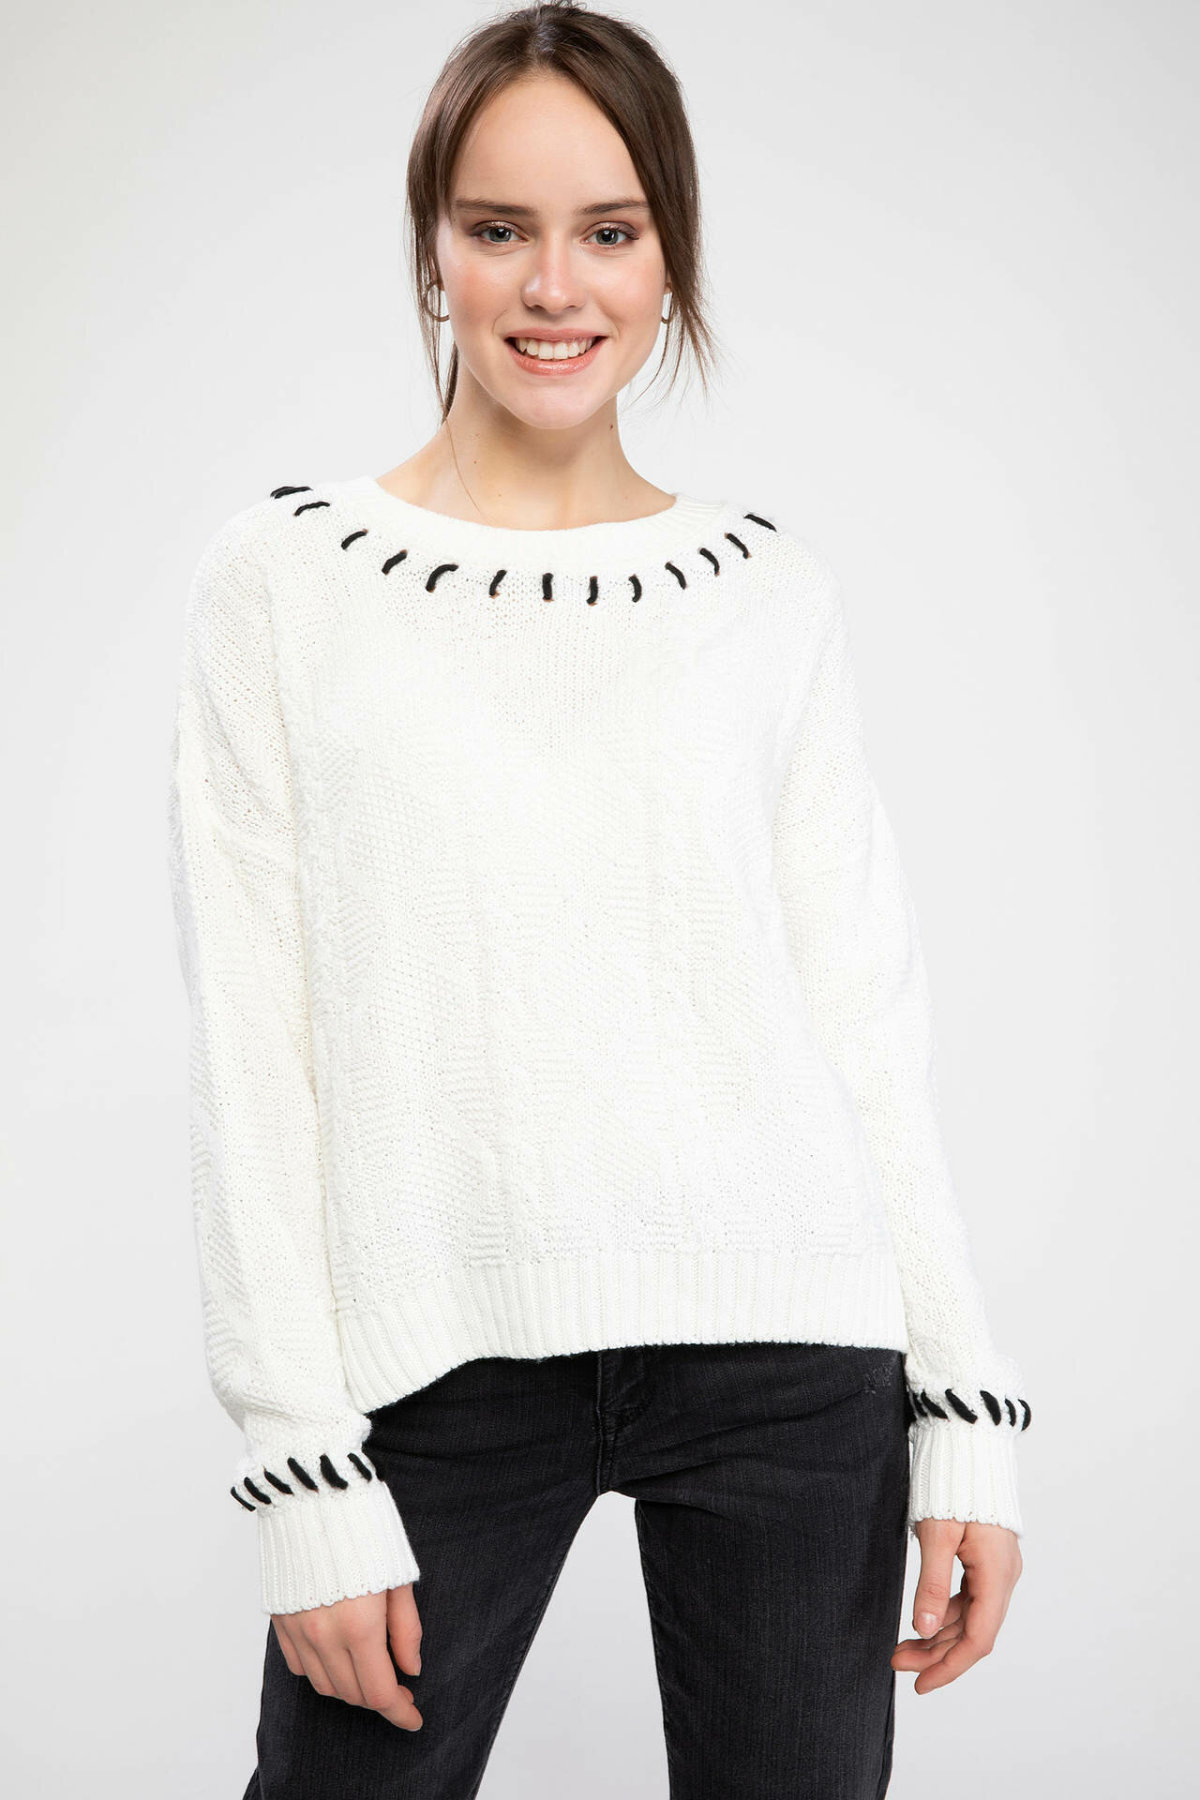 DeFacto Women Fashion Chic Collar Knitted Pullovers Fashion O-neck Simple Knitted Comfort Sweatshirt Female New-J2220AZ18WN